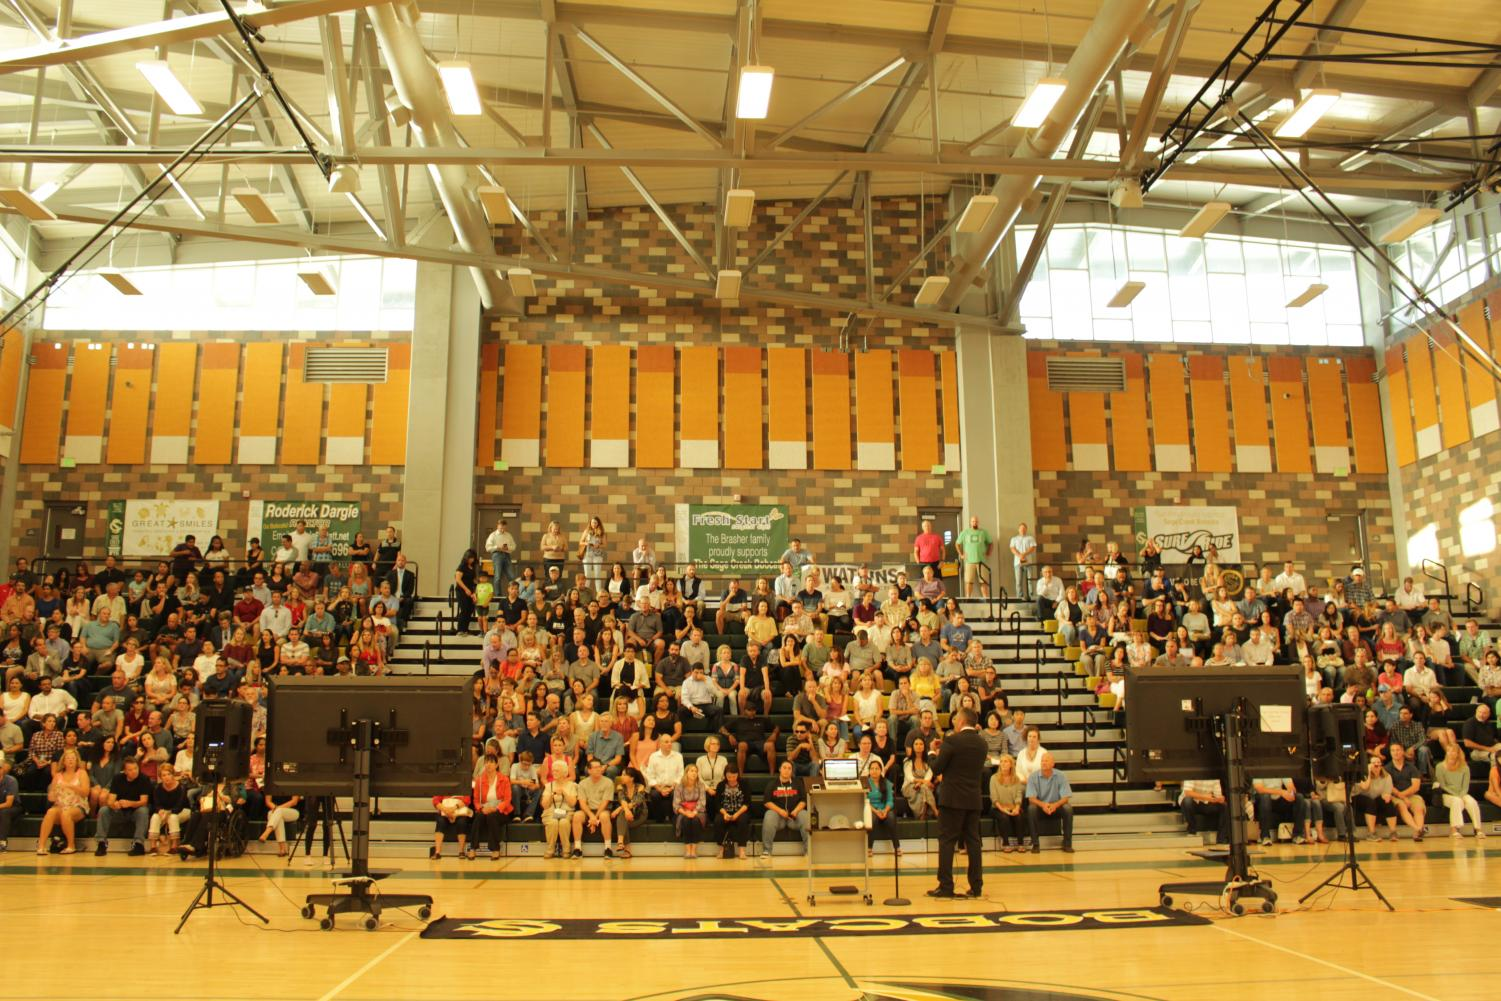 Principal+Morales+addressed+the+new+and+returning+parents+of+our+Sage+Creek+student+population+during+Back+to+School+Night+on+Tuesday.+The+assembly+of+parents+was+followed+by+a+mock+school+day+in+which+parents+visited+their+student%E2%80%99s+teachers+and+were+informed+of+syllabi+and+classroom+expectations+